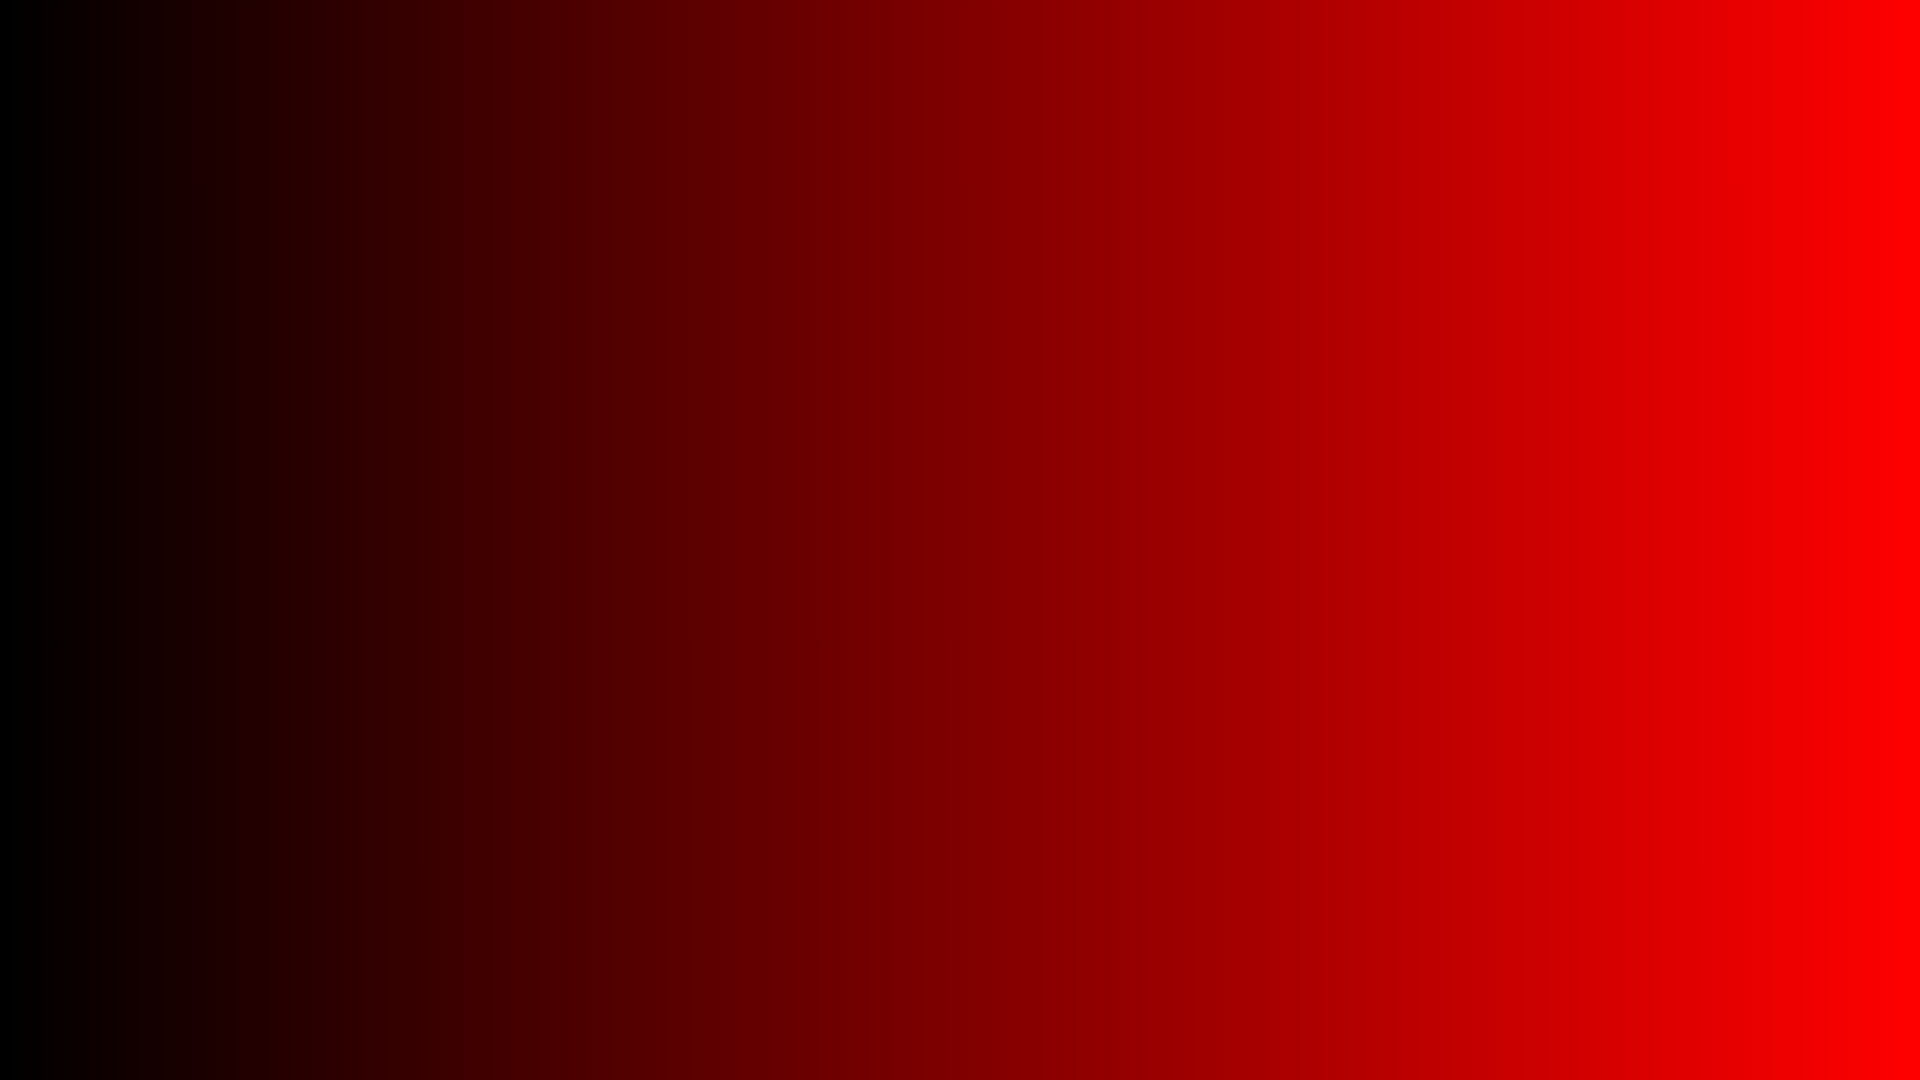 red and black gradient - photo #34